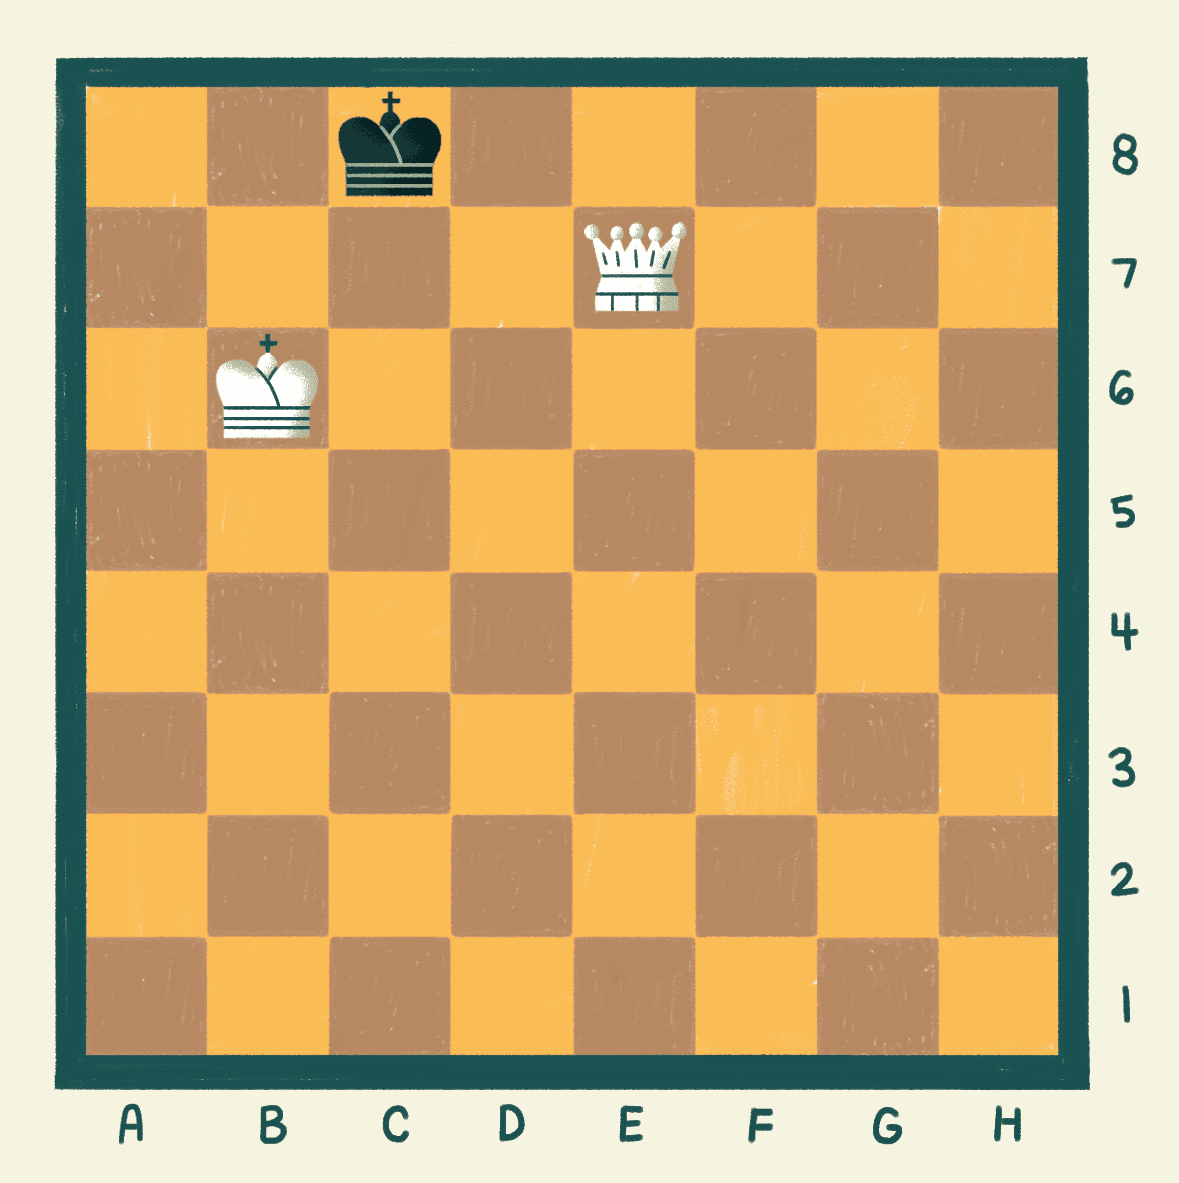 preparing checkmate in chess